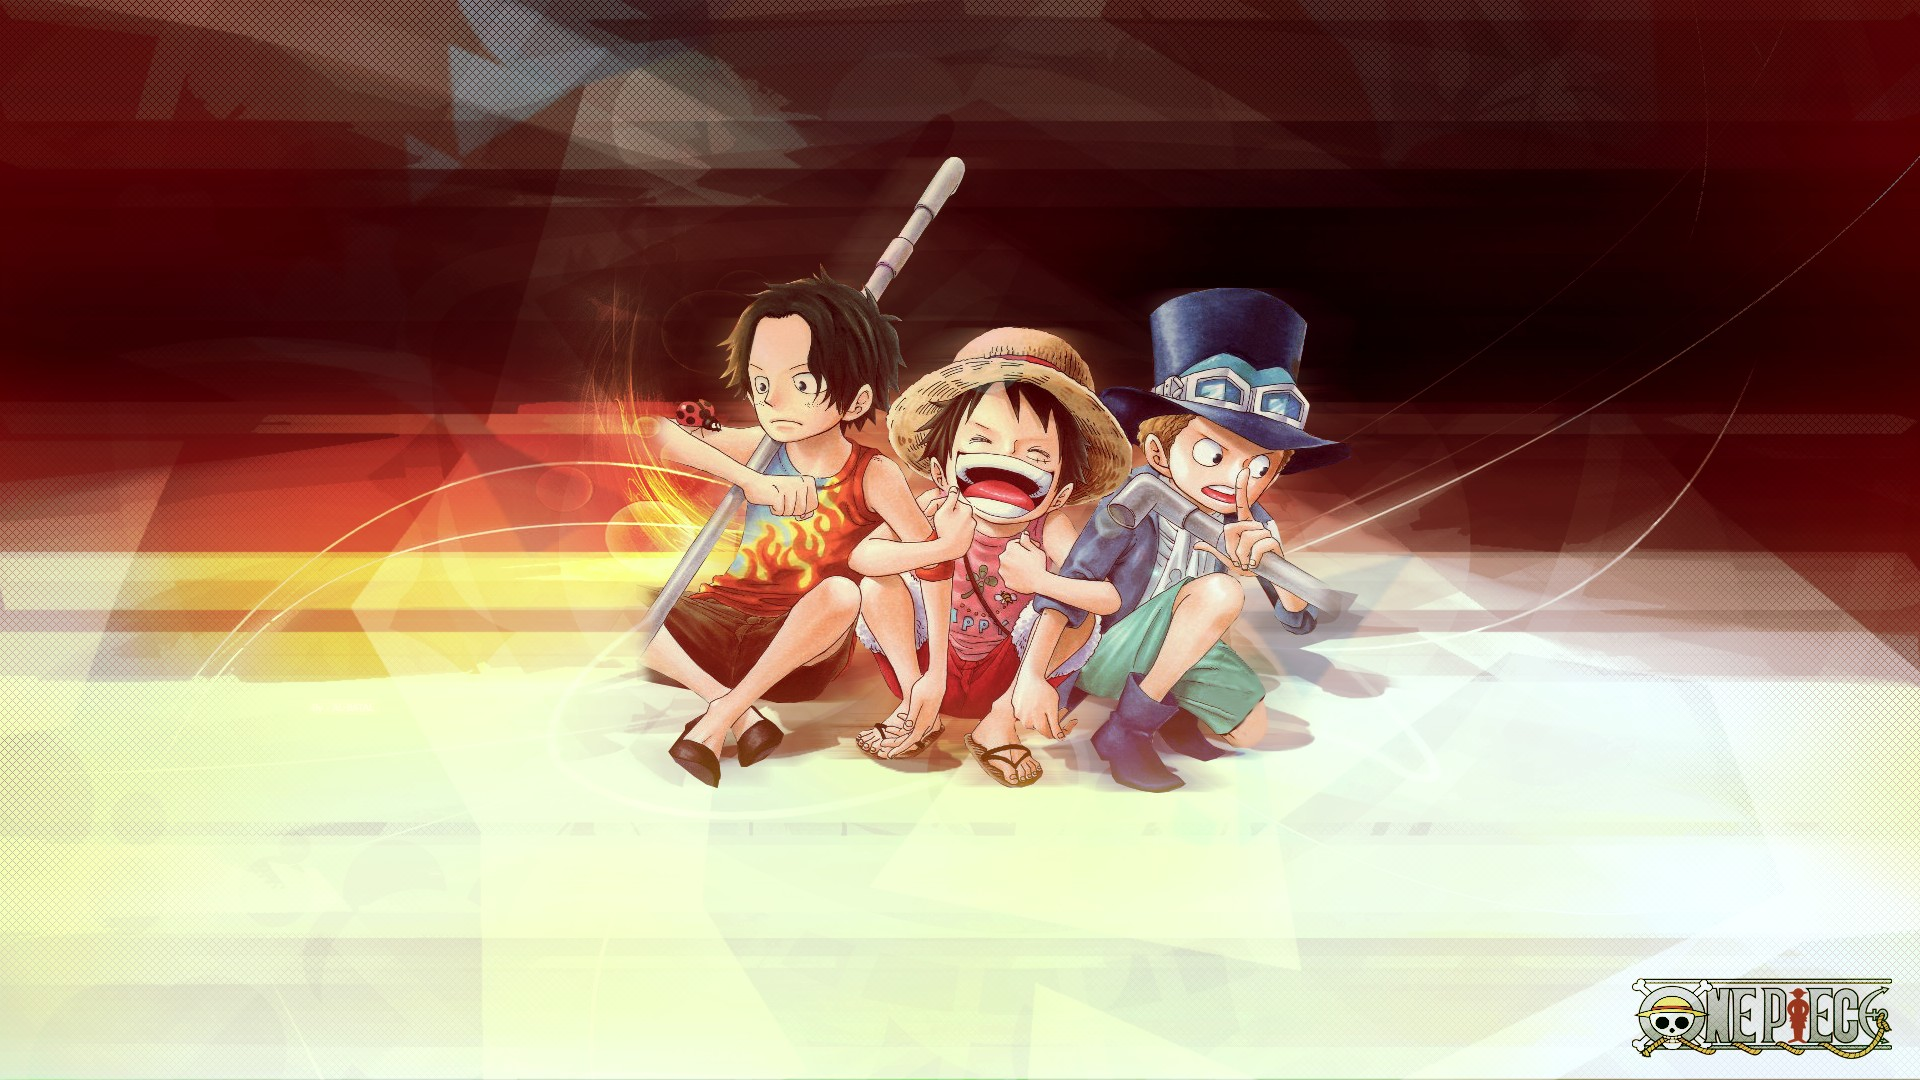 ace and luffy fighting wallpaper - photo #40